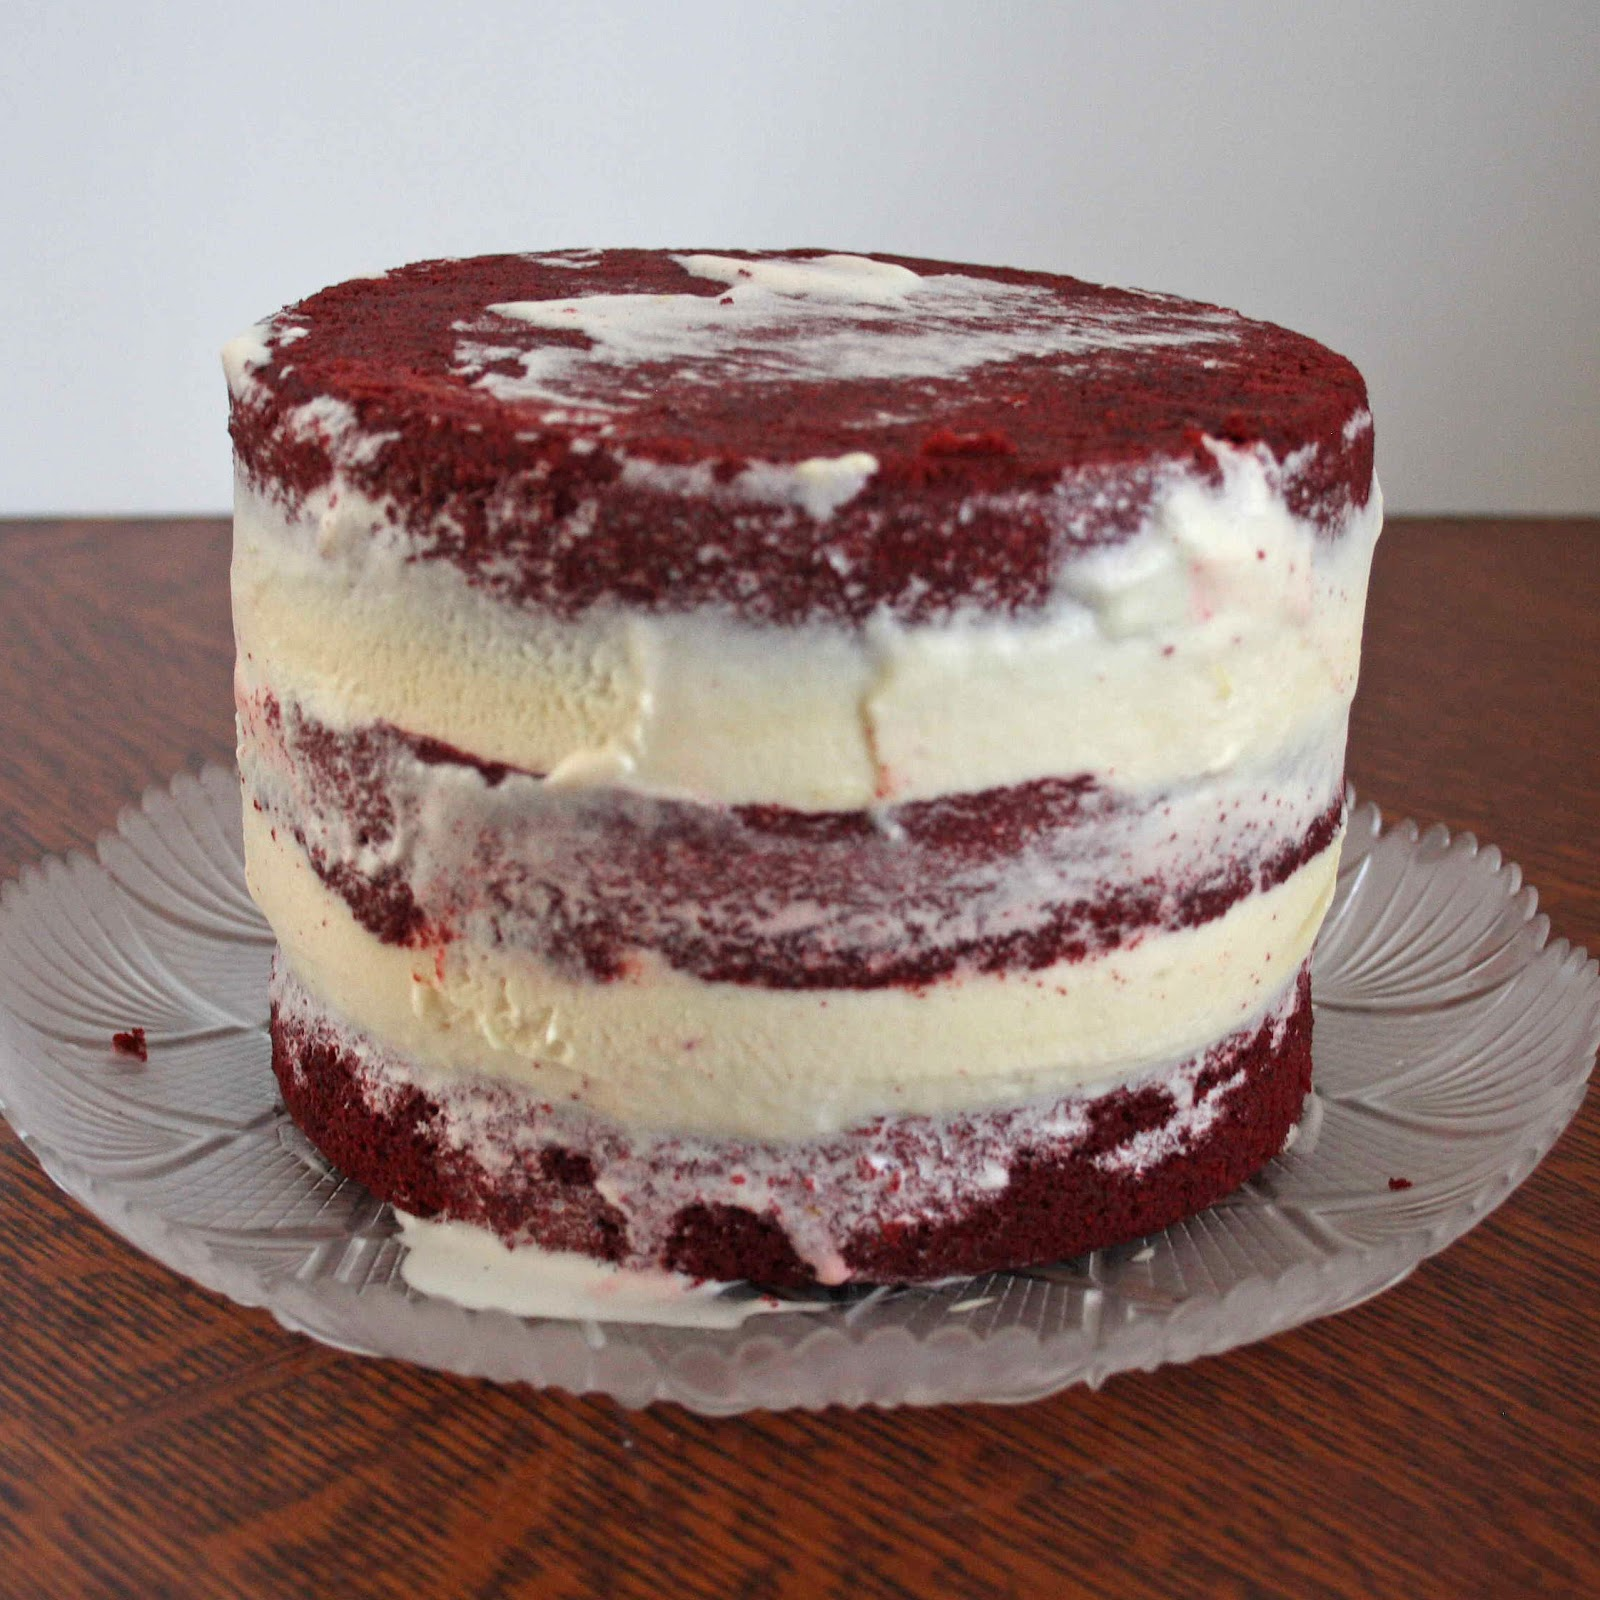 Red Velvet Cake Design Ideas : All Kinds of Sugar: Red Velvet Ice-cream cake